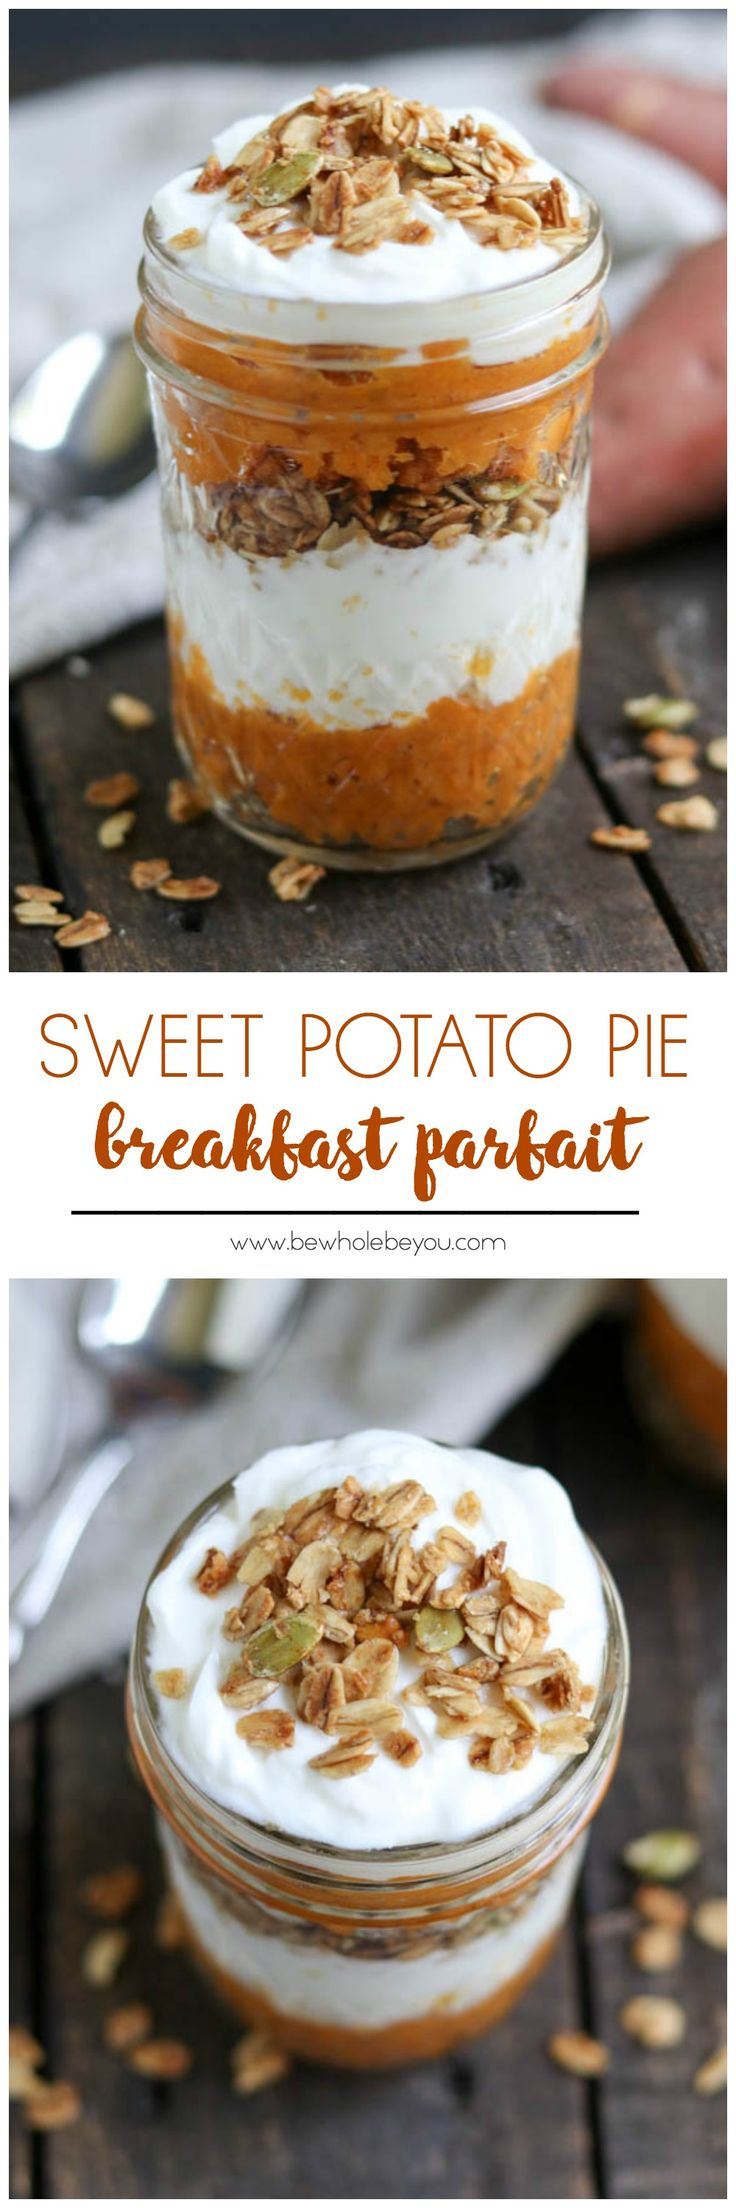 Sweet Potato Pie Breakfast Parfait. Pie for breakfast? This fall recipe is so simple to make but full of flavor. Yogurt, granola and sweet potatoes come together for the win!